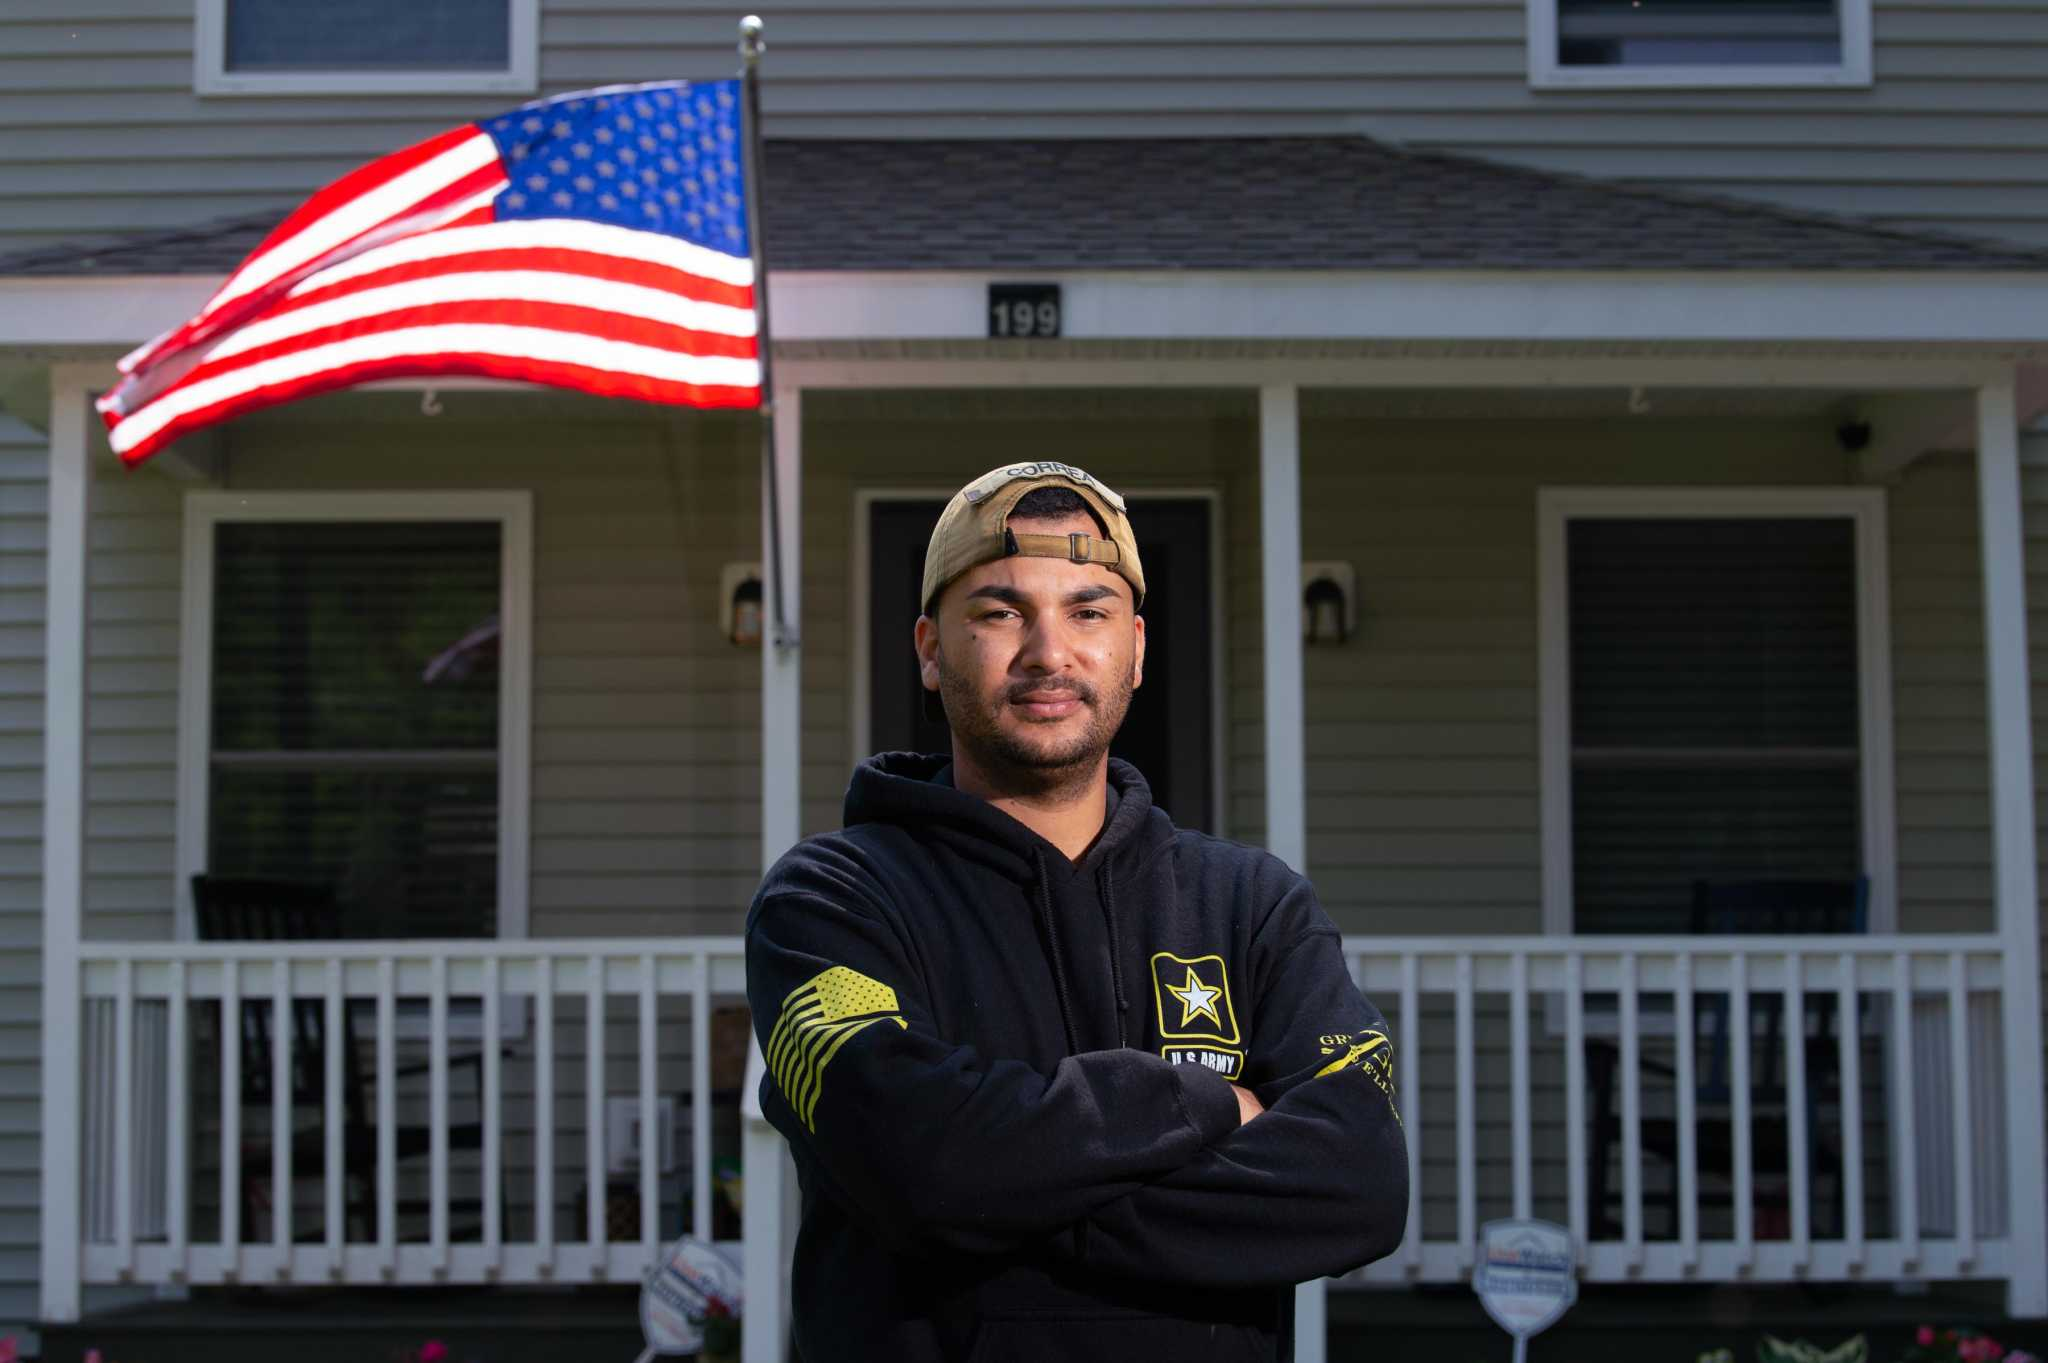 CT's Afghanistan veterans struggle with trauma from unfinished mission